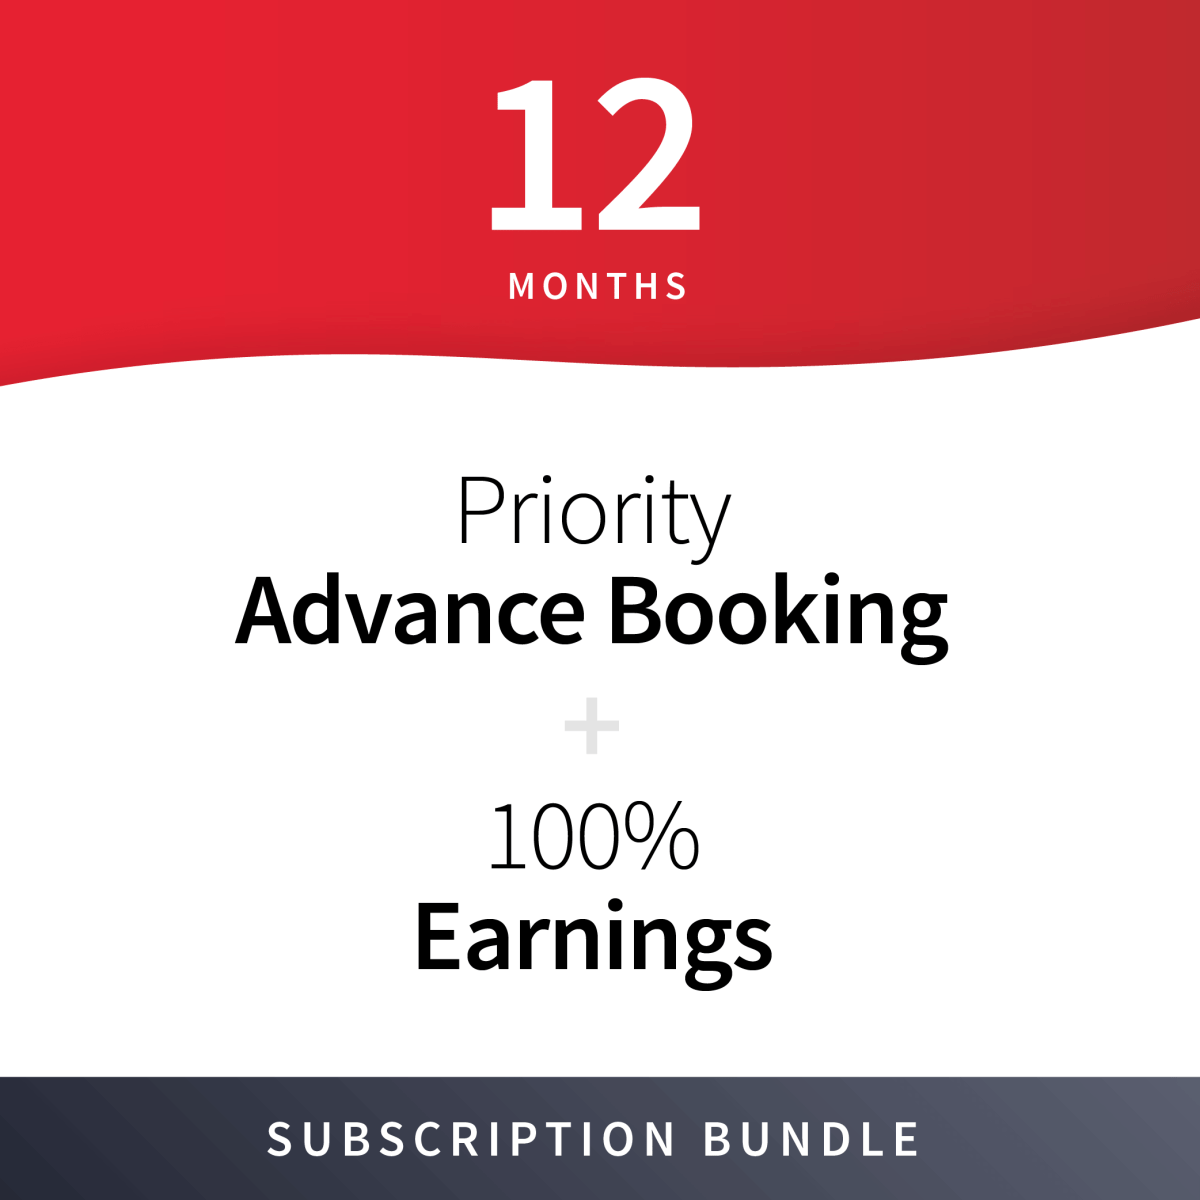 100% Earnings + Priority Advance Booking Subscription Bundle - 12 Months 11